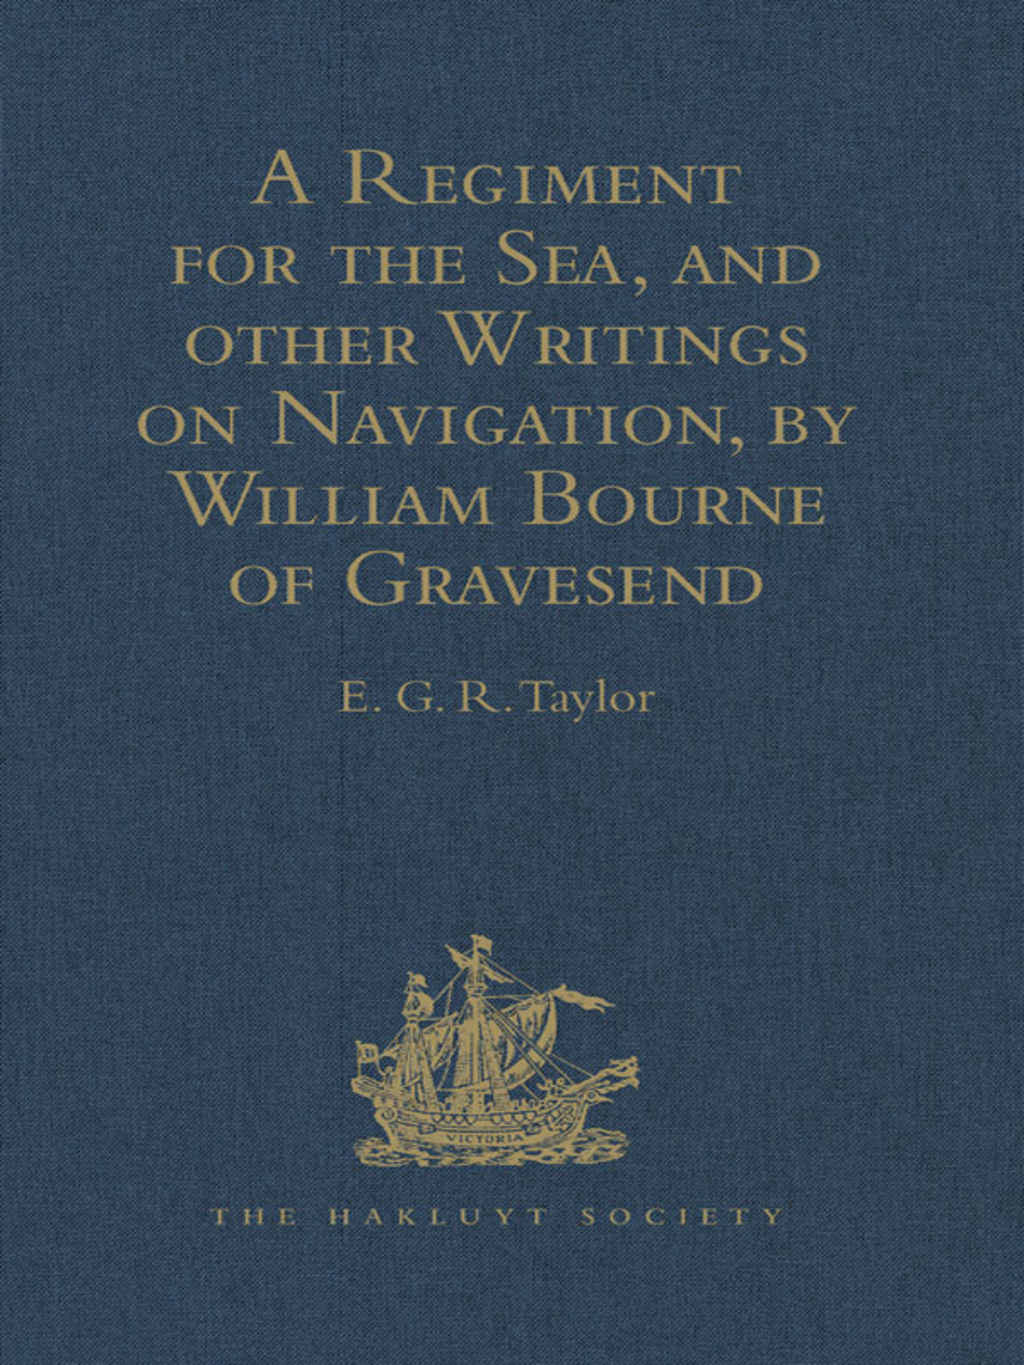 A Regiment for the Sea  and other Writings on Navigation  by William Bourne of Gravesend  a Gunner  c.1535-1582 (eBook) - E.G.R. Taylor